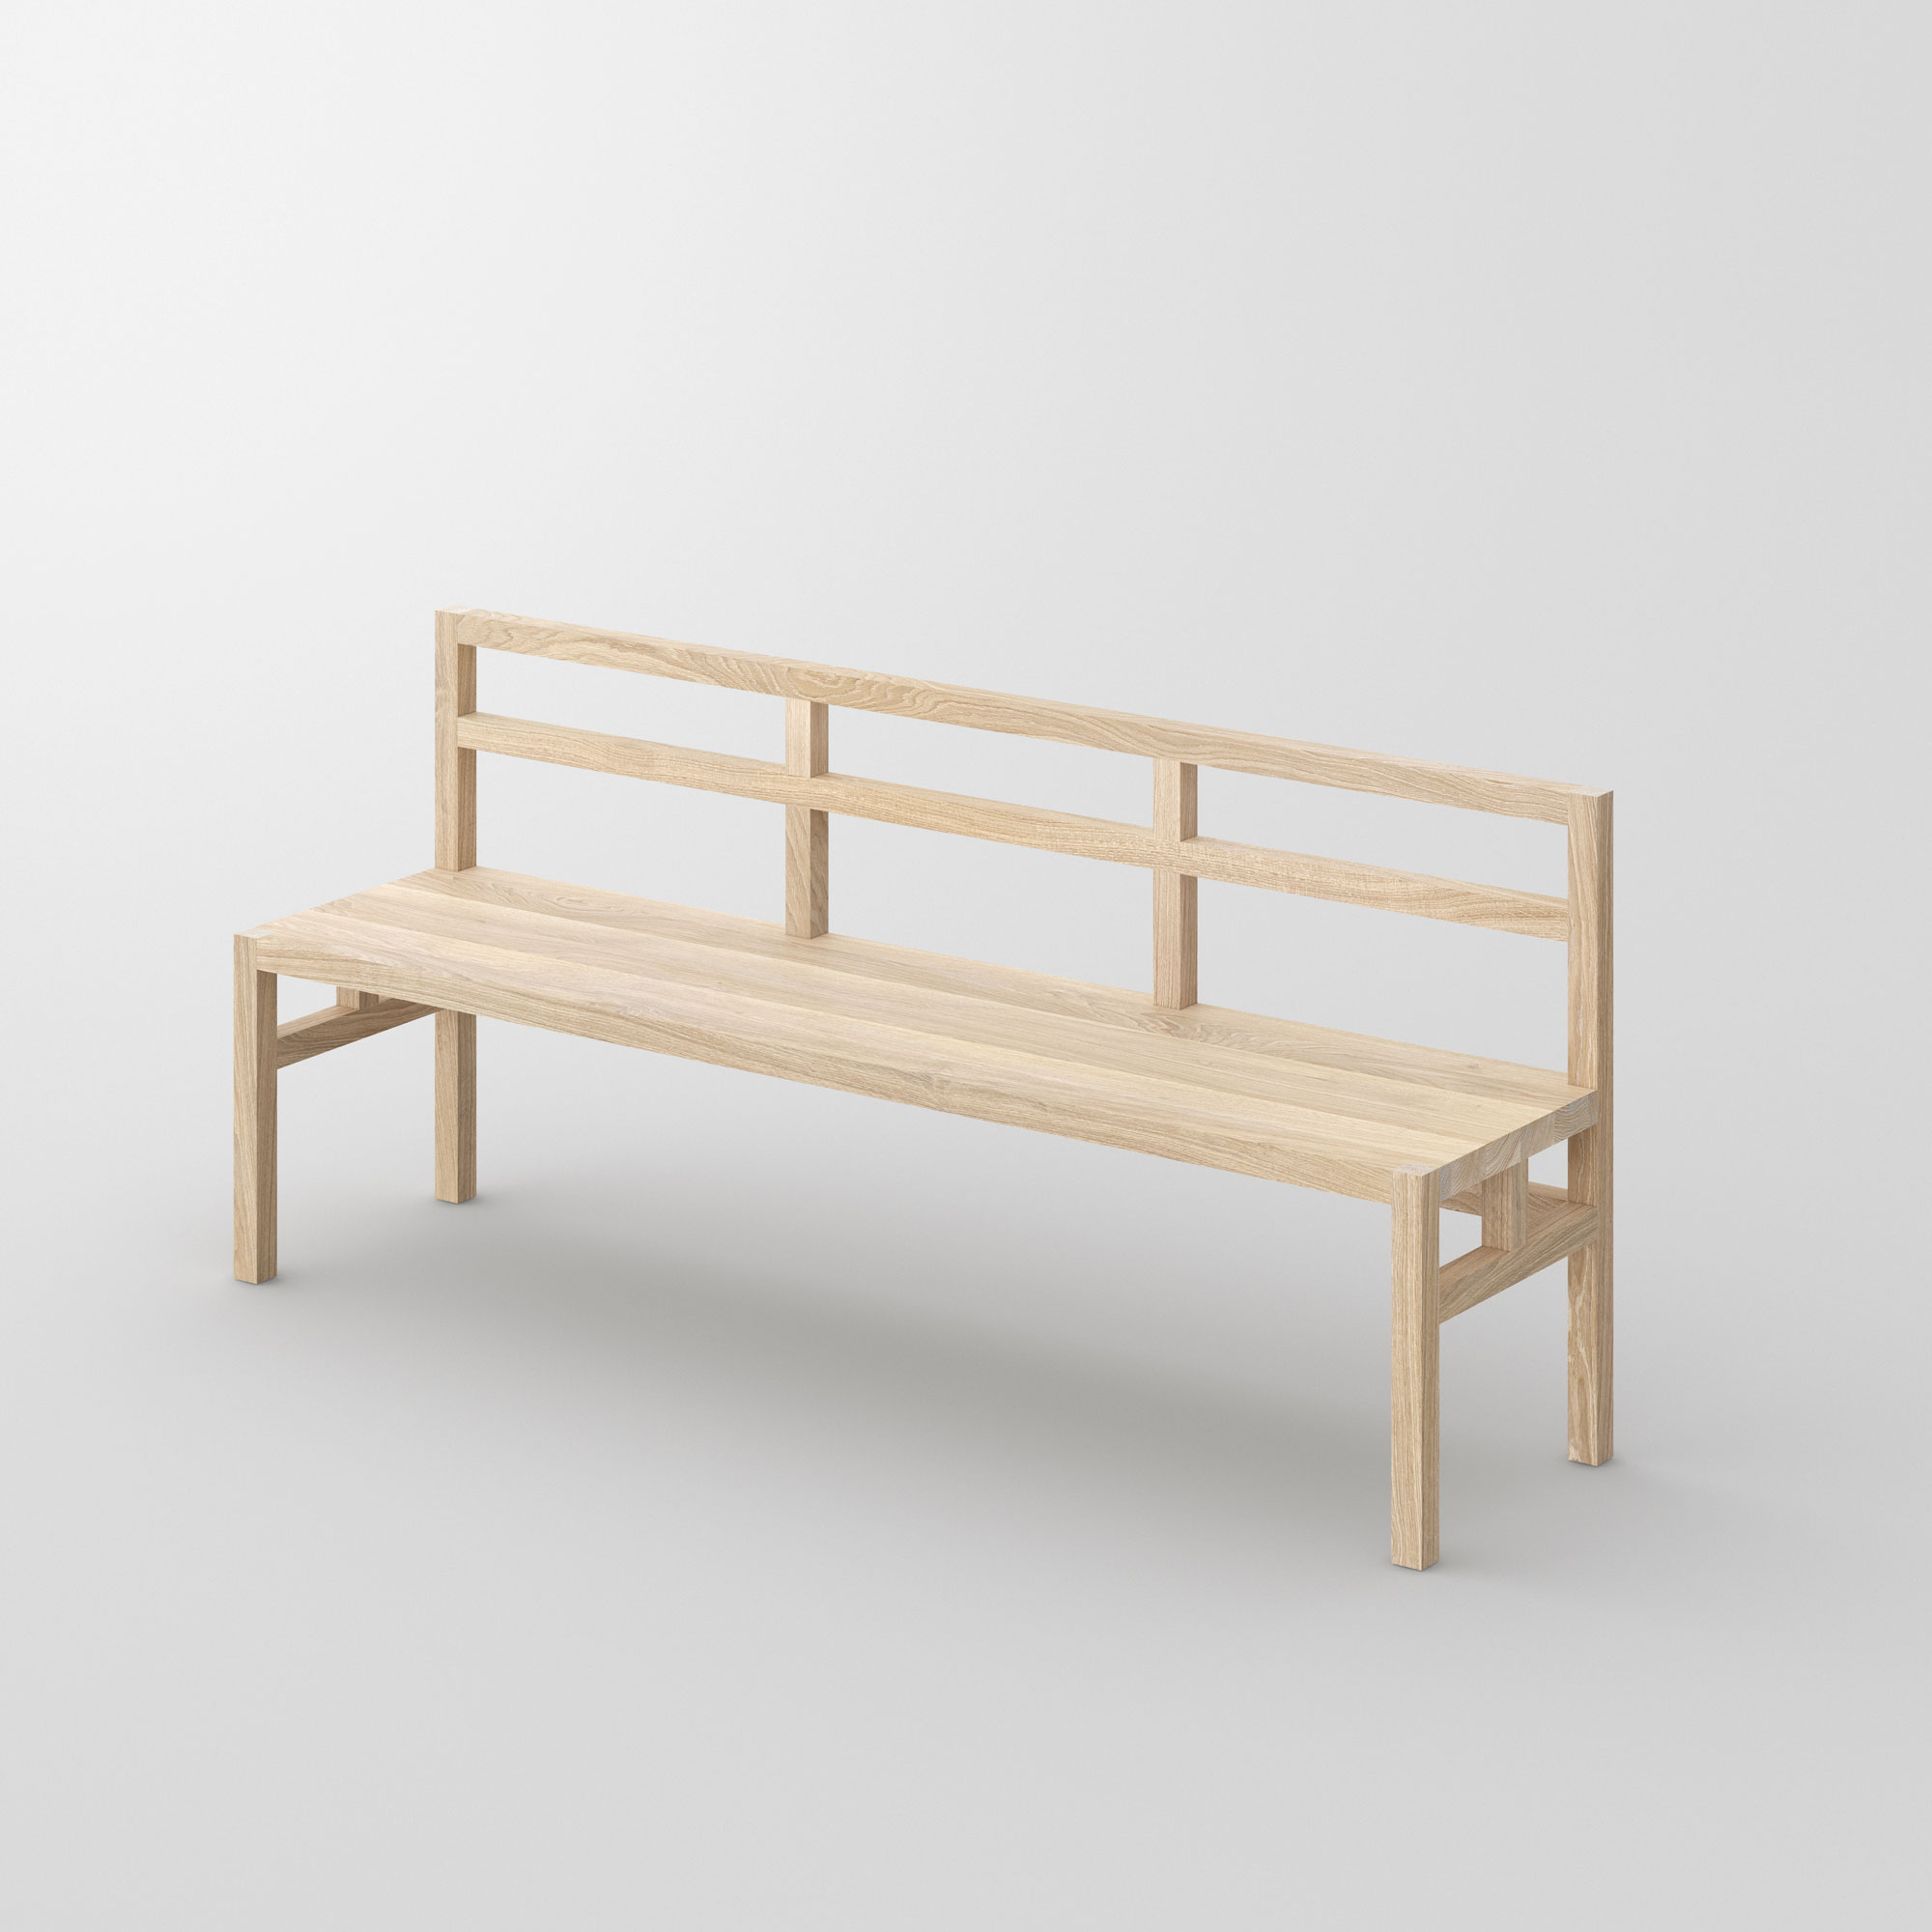 Bench with Backrest SENA RL cam1 custom made in solid wood by vitamin design